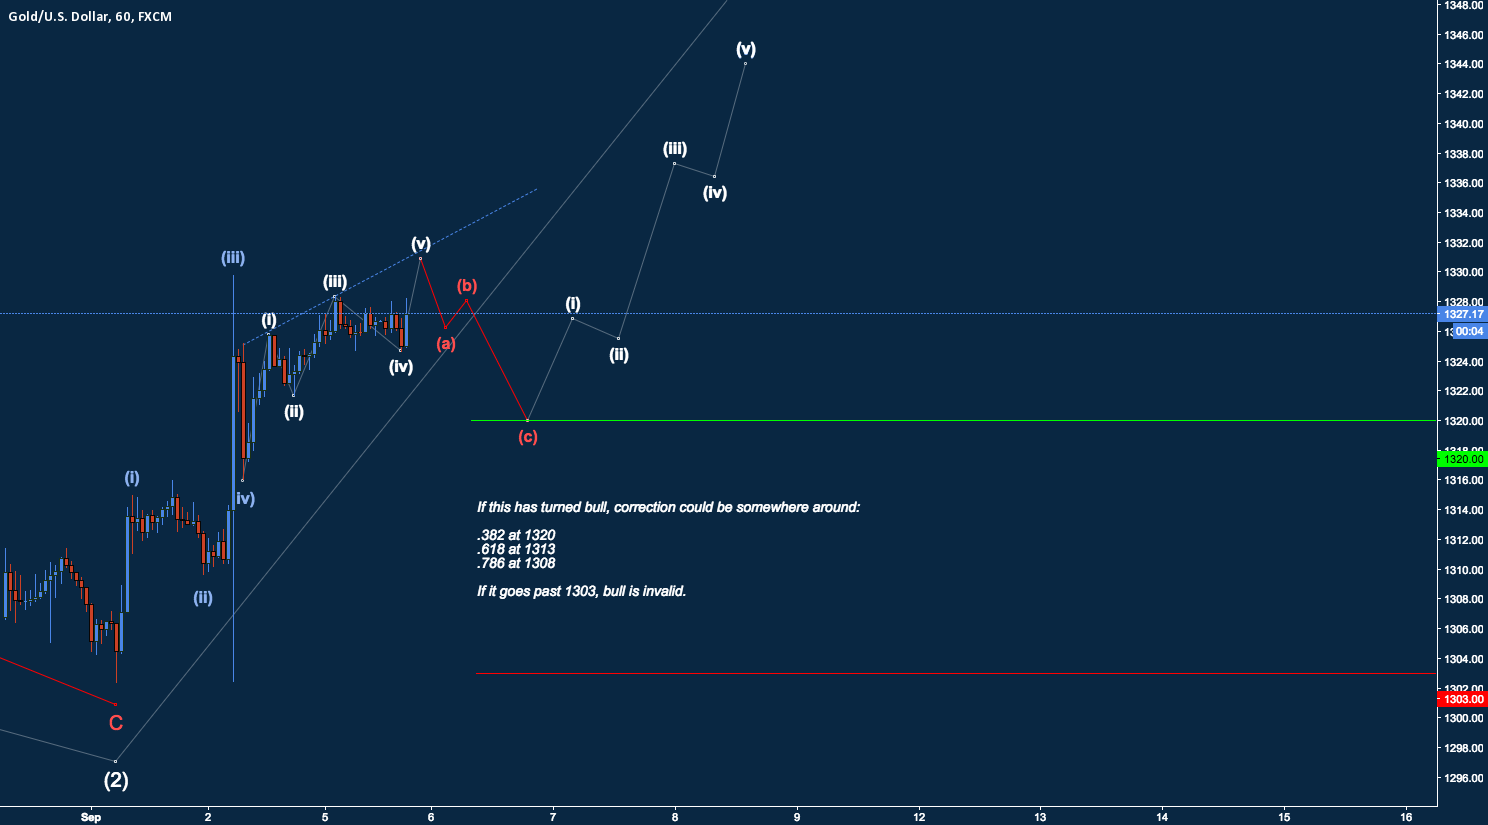 Gold Going Bull? Waiting on 5th Wave Completion (still).